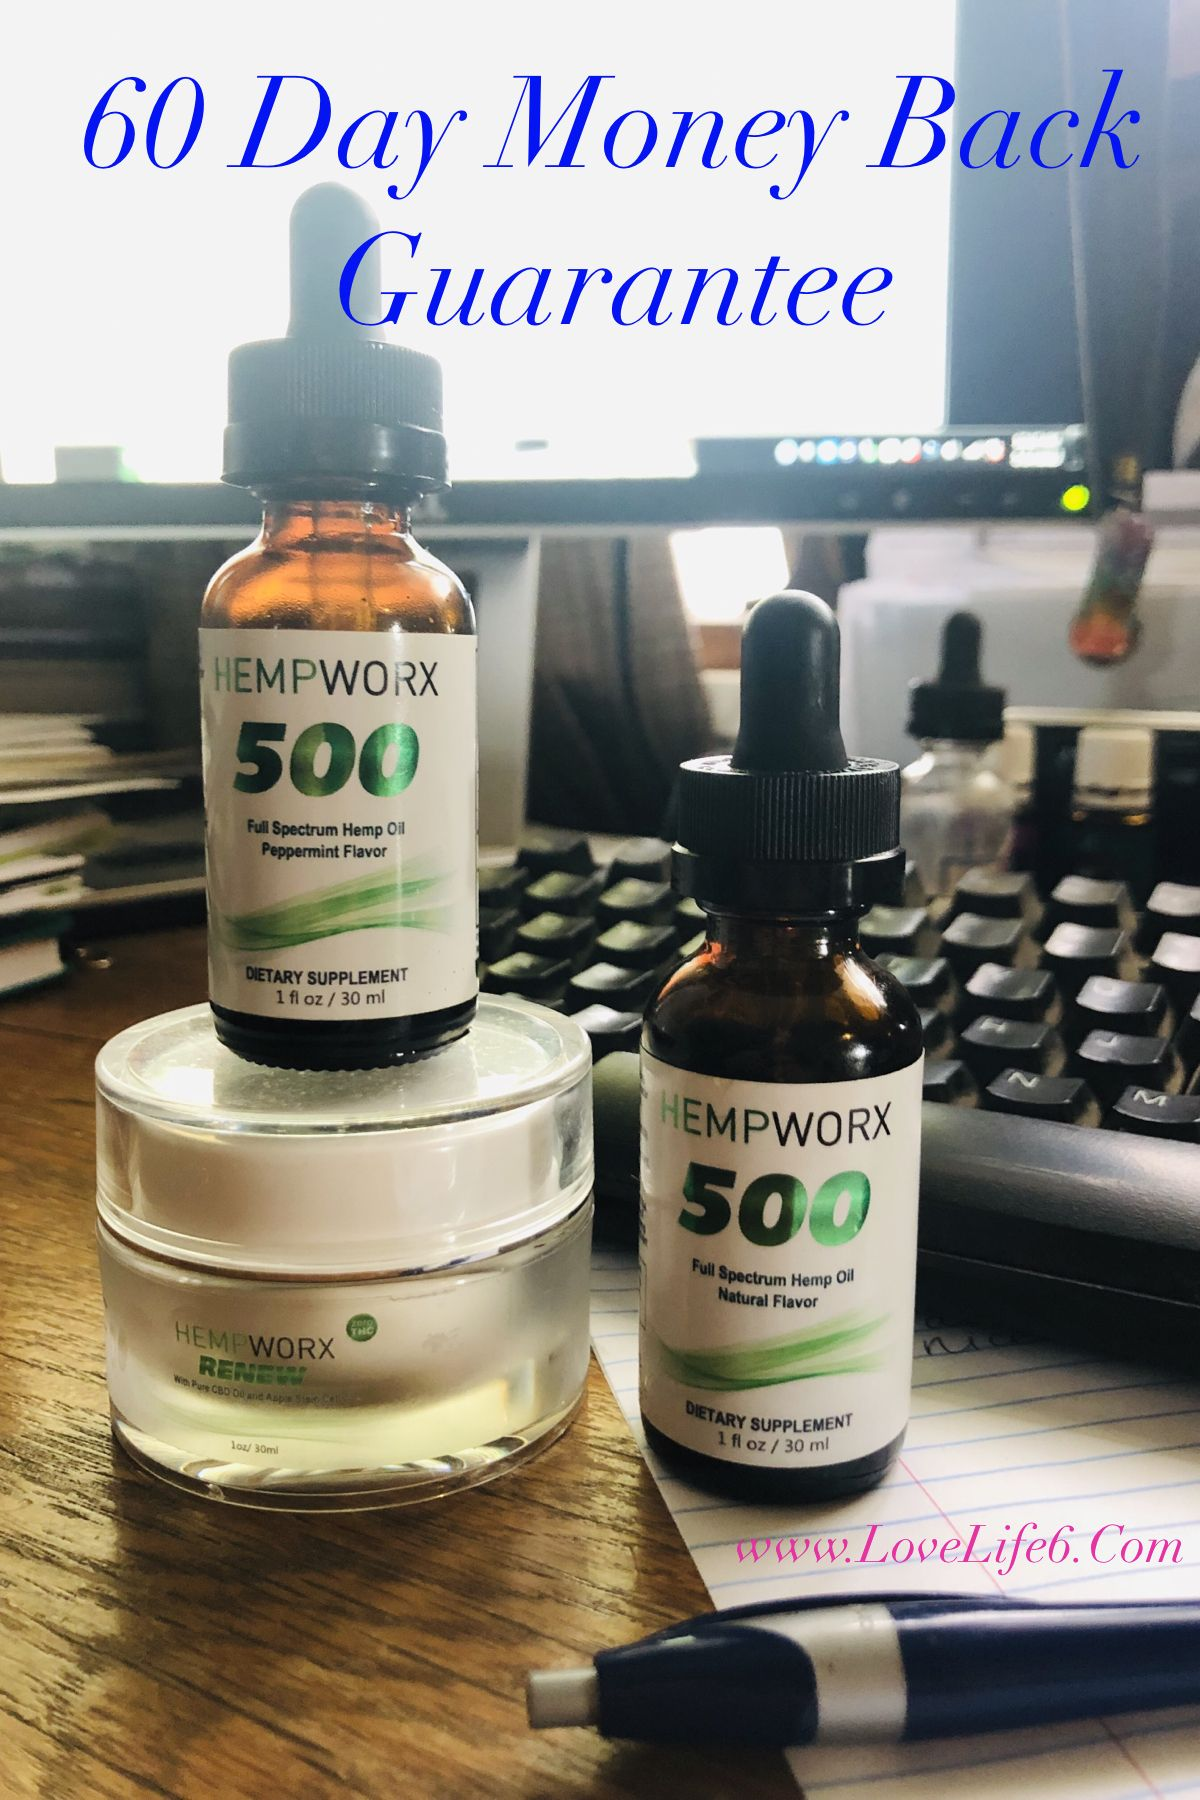 Would you try my CBD if it came with a 60 Day Money Back